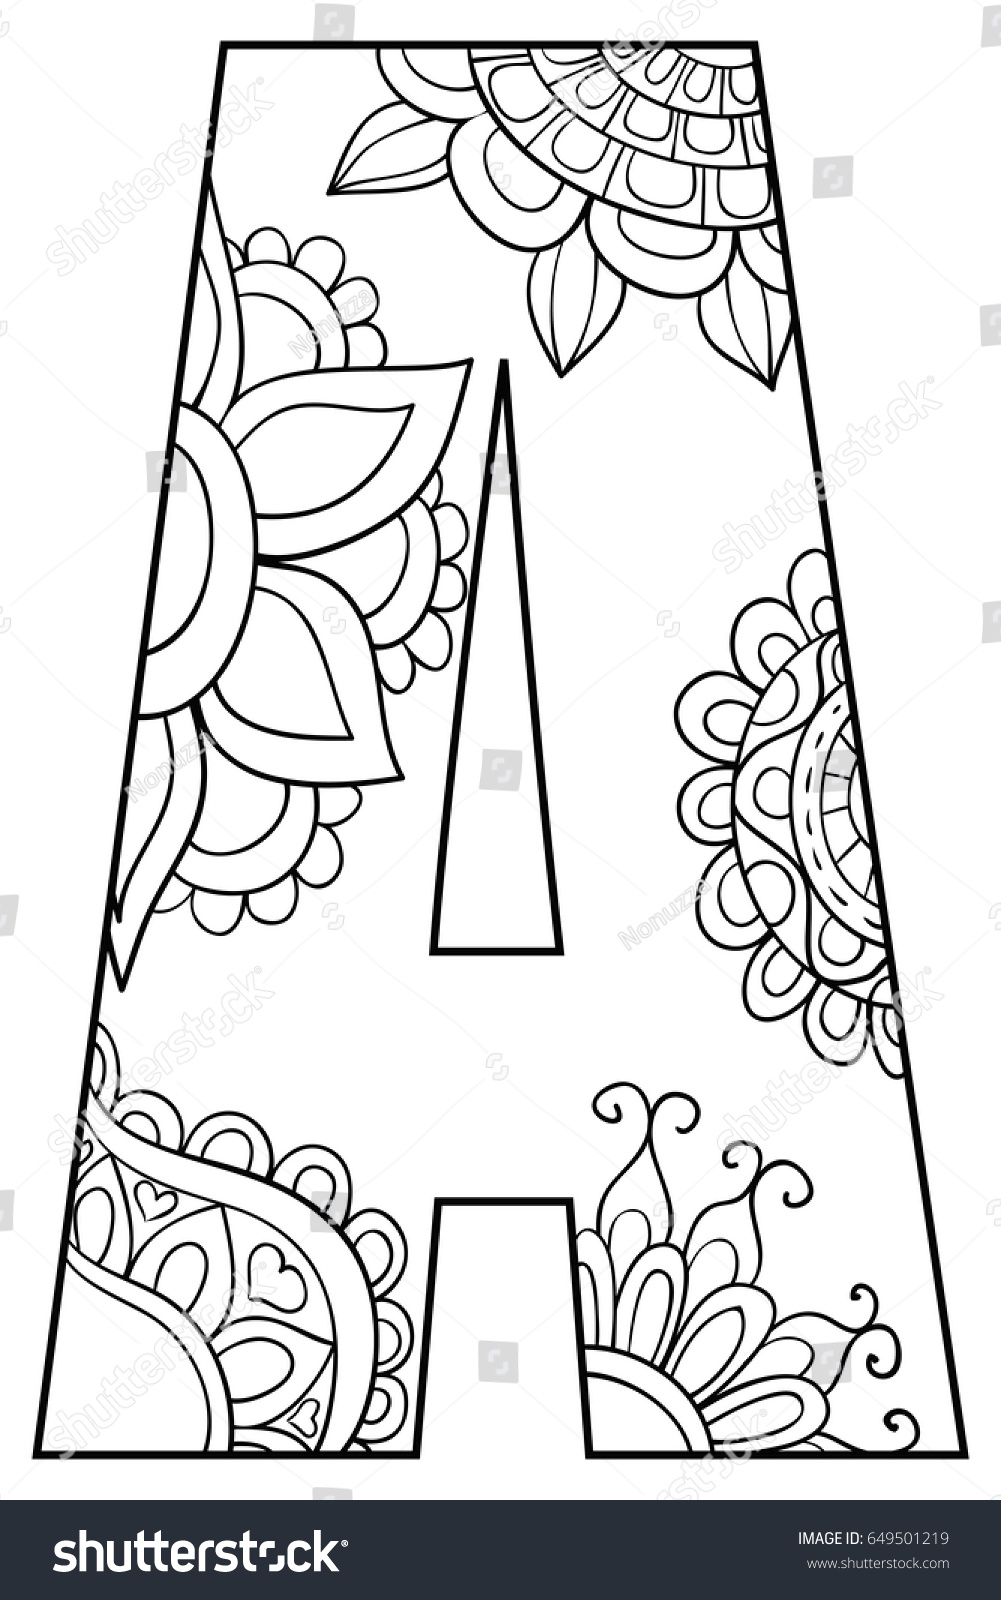 Adult Coloring Page Letter Alphabet Art Stock Vector Royalty Free 649501219